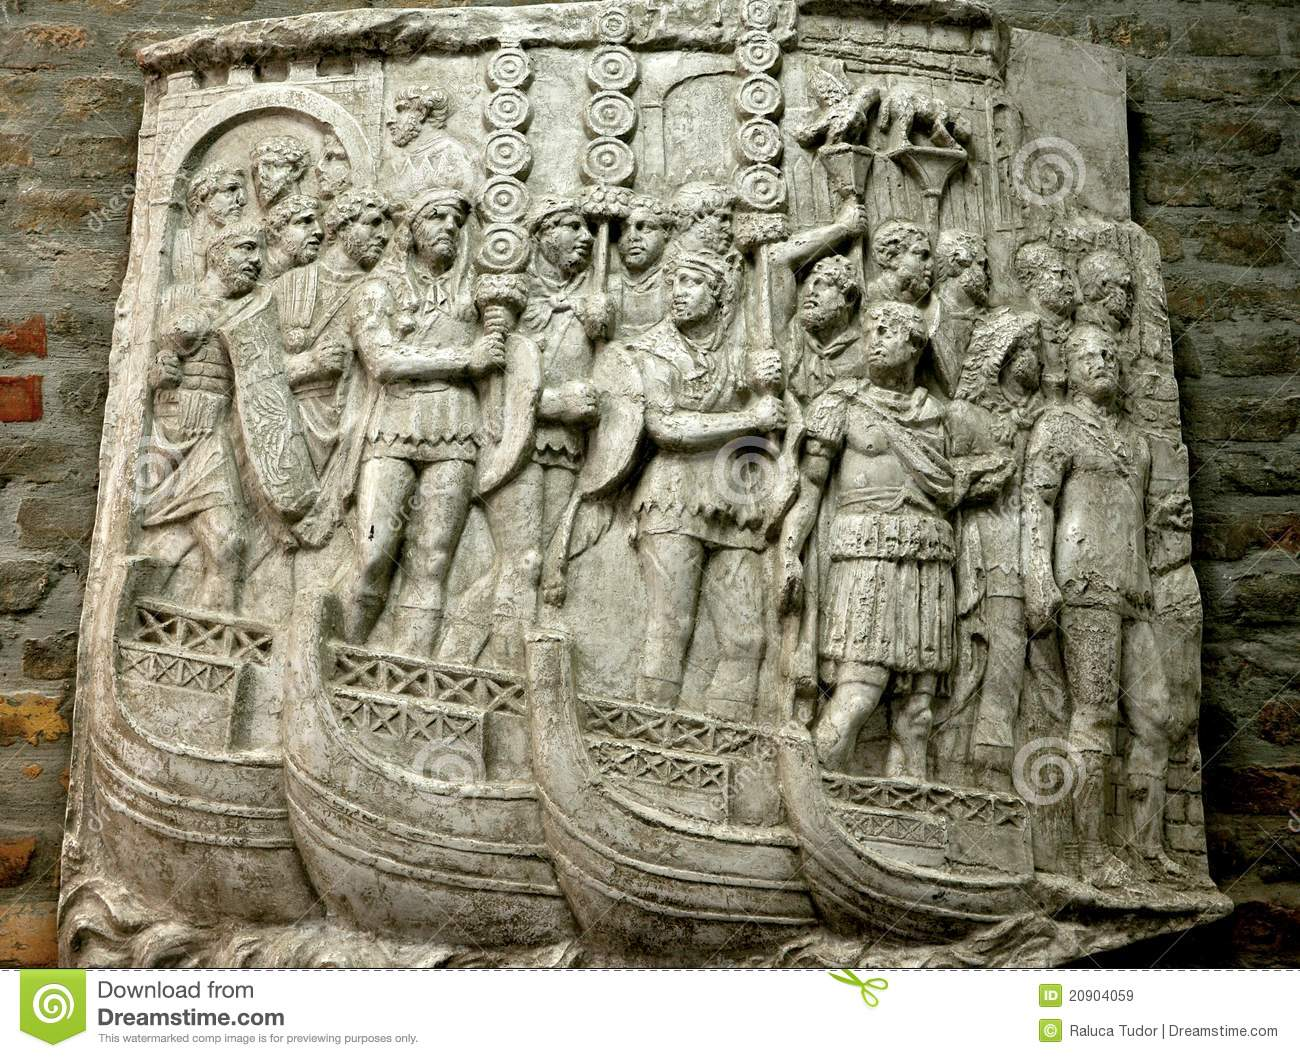 ... Roman Stone Carving Royalty Free Stock Images - Image: 20904059